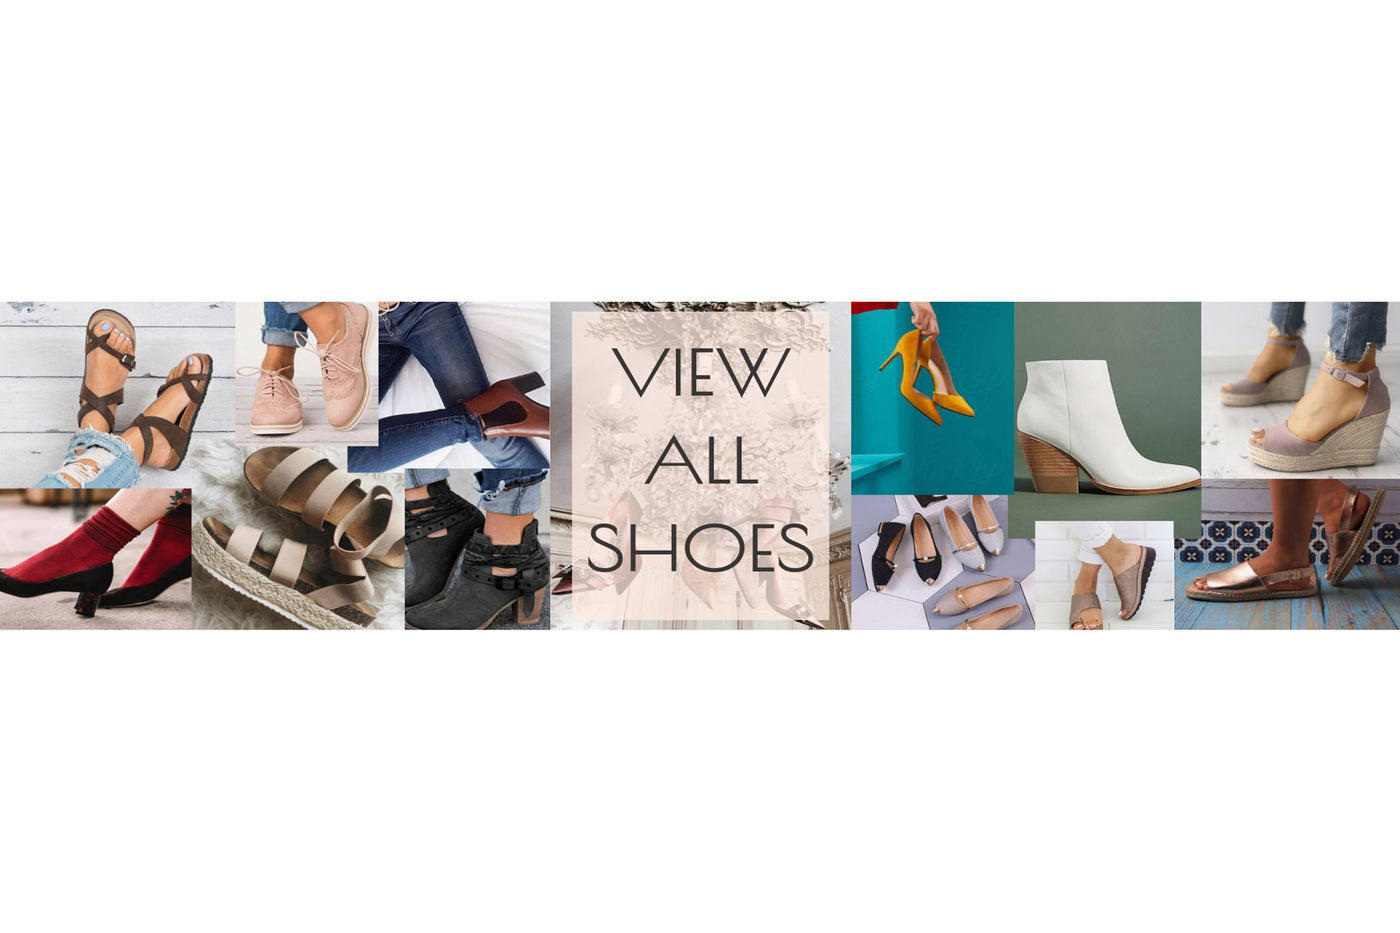 View All Shoes